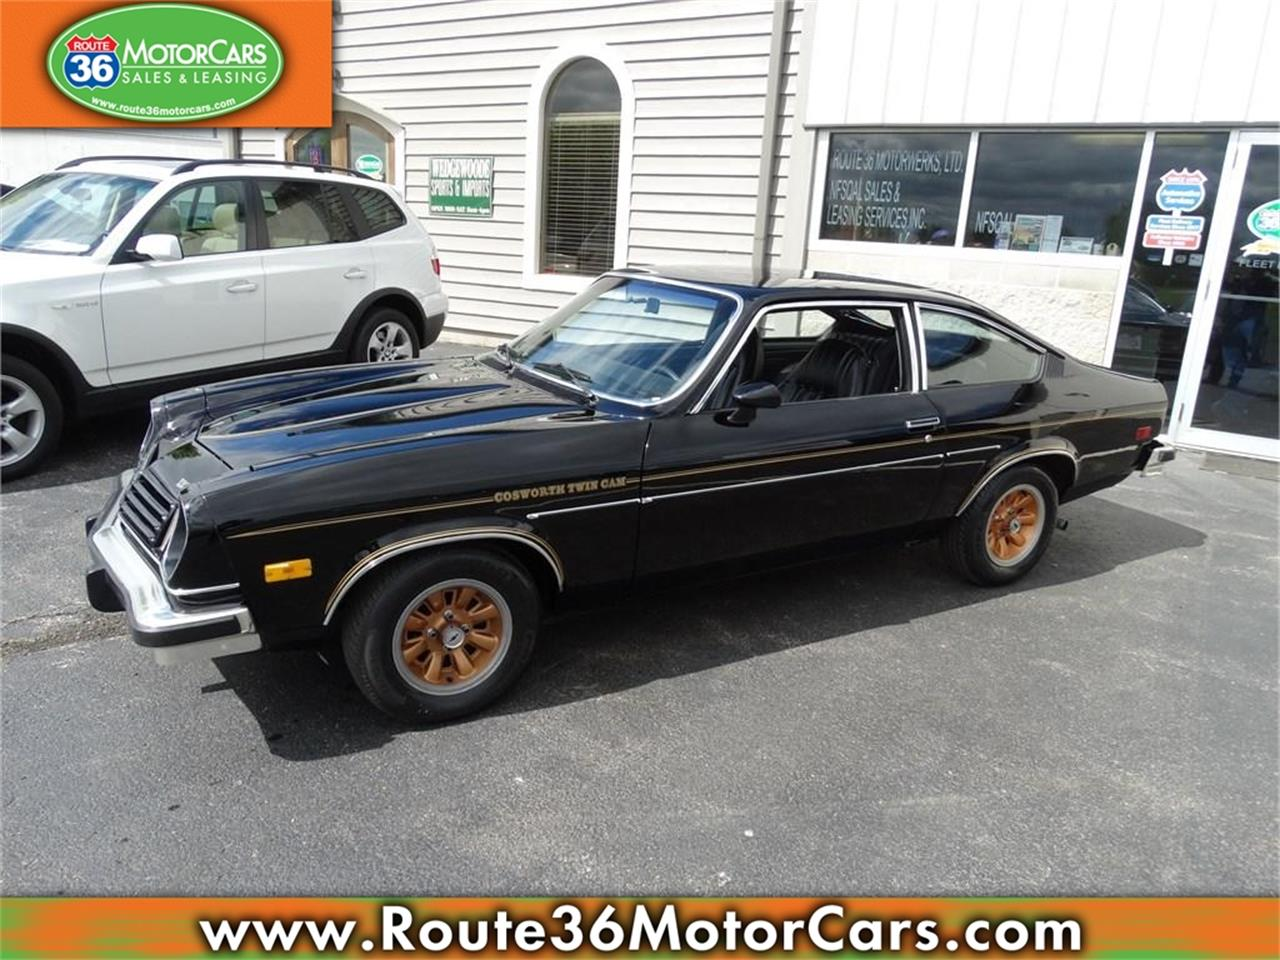 Large Picture of 1975 Vega located in Ohio - $10,475.00 Offered by Route 36 Motor Cars - IKGX